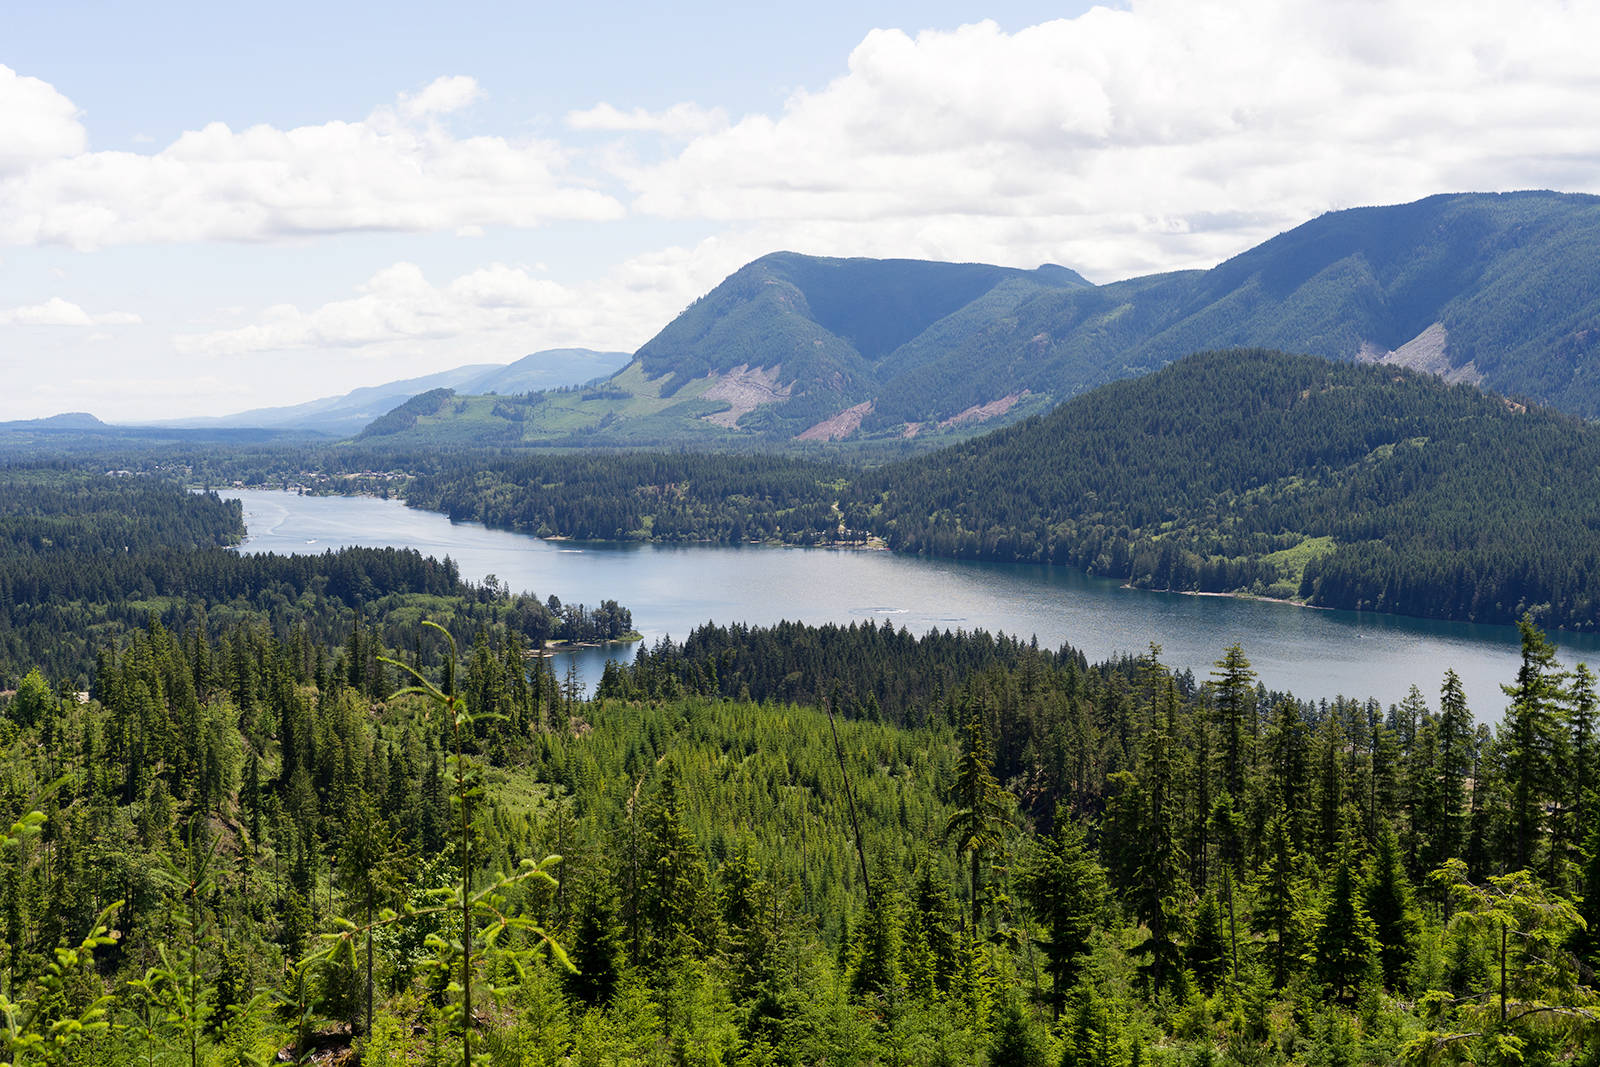 With Laketown Ranch opening its festival site for camping this summer, campers will have another option when exploring the Lake Cowichan area.